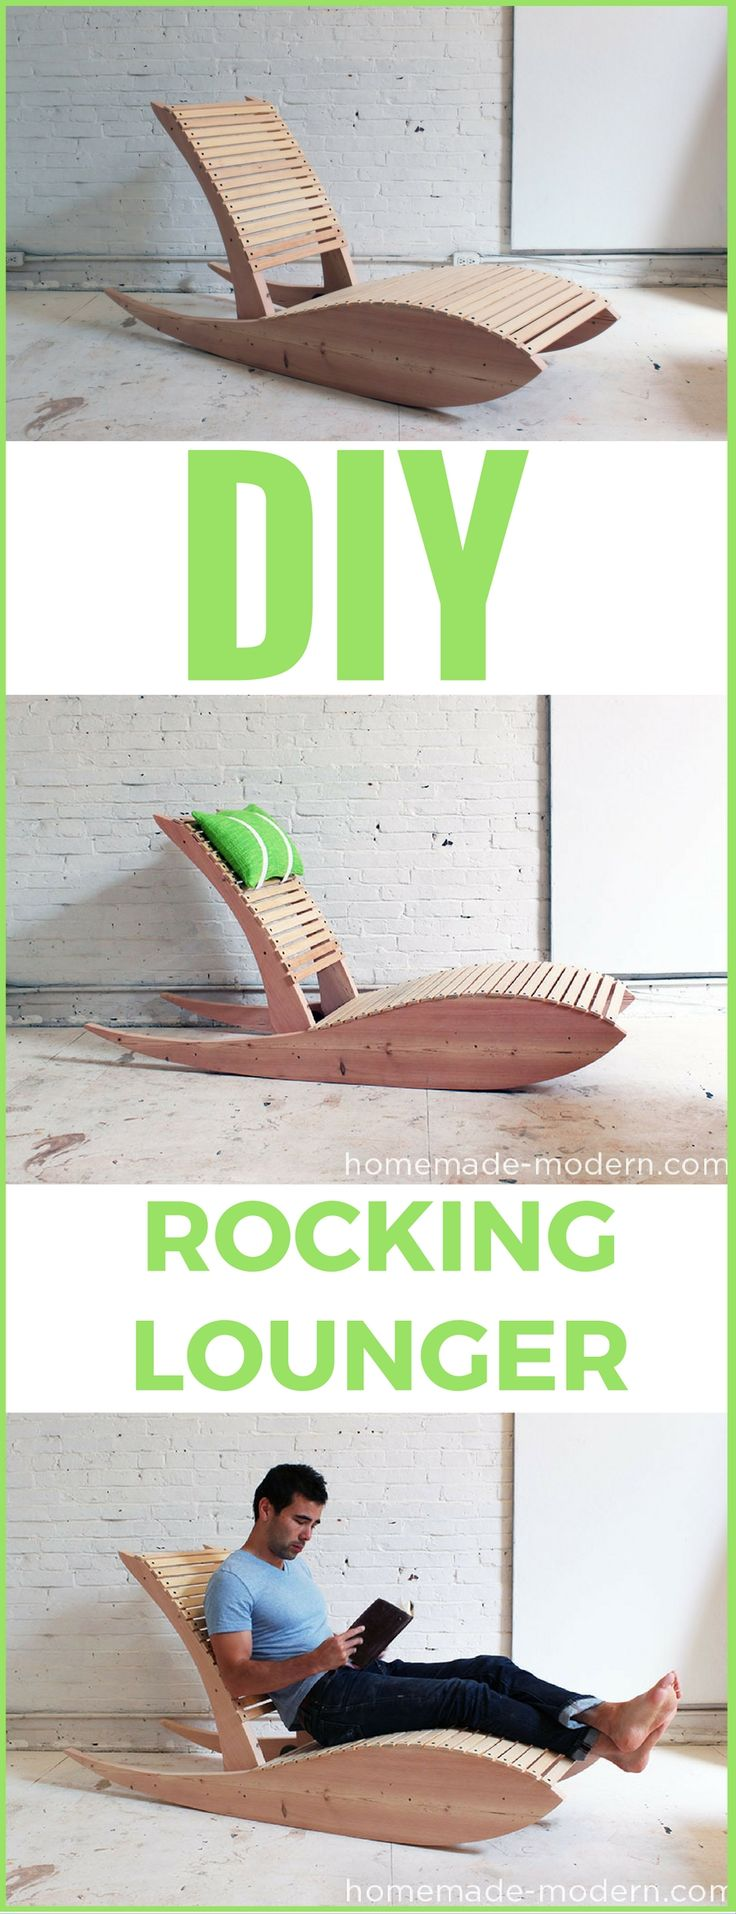 Modern outdoor chair diy build youtube - Diy Rocking Lounger Http Vid Staged Com D1gt Great Project